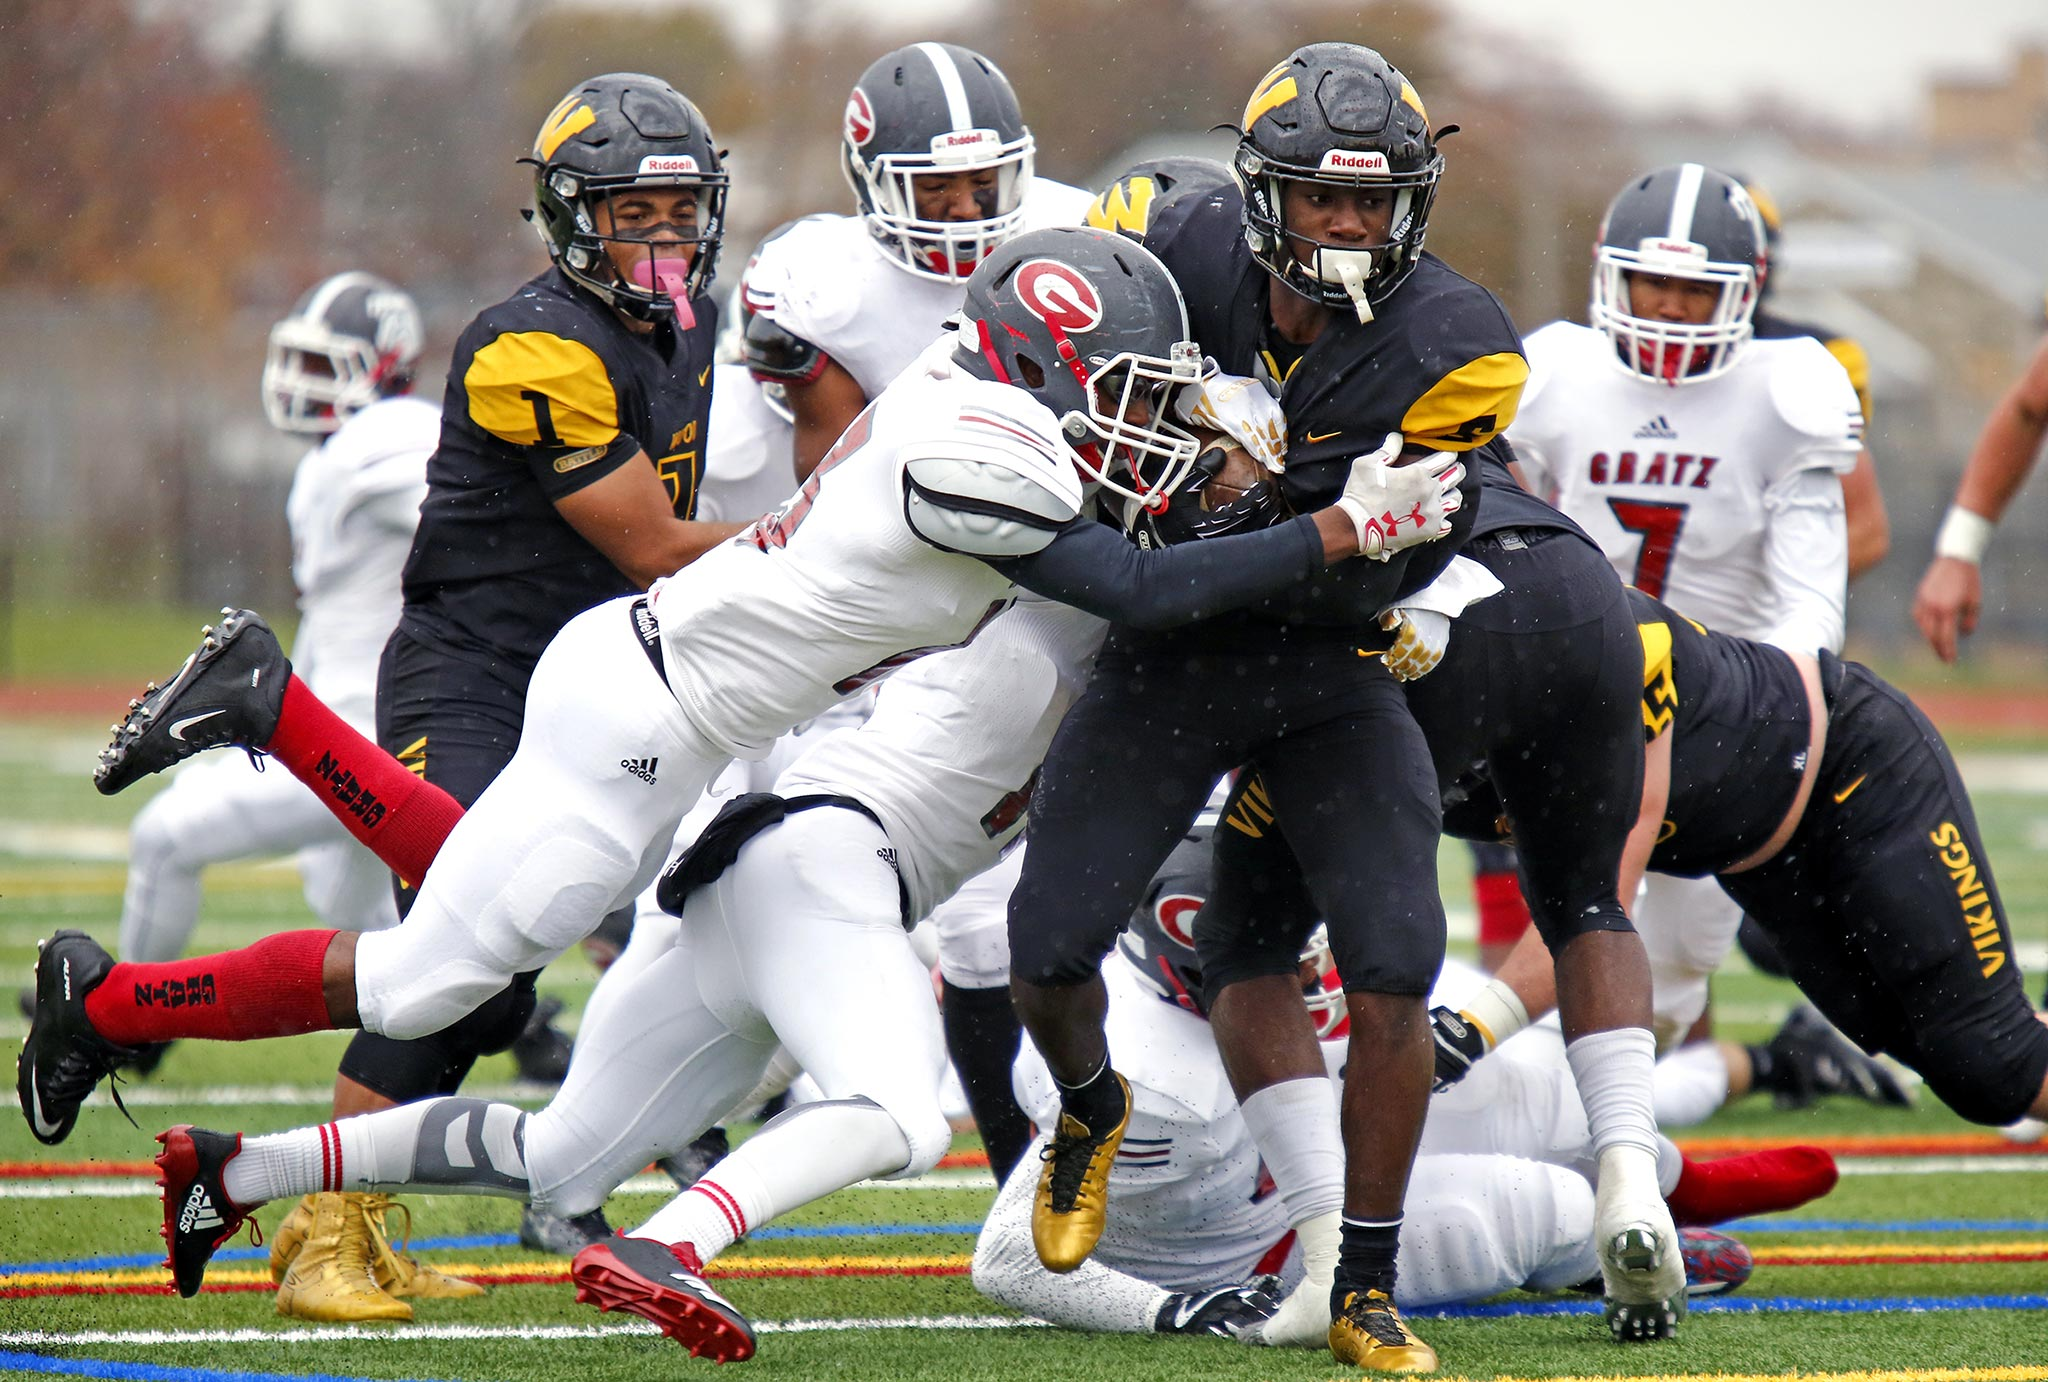 Archbishop Wood running back Nasir Peoples carries Simon Gratz defender Jawon Harrison (middle, airborne) and Terrell Stewart (hidden) for yardage during the second quarter of the District 12 Class 5A football final Saturday, Nov. 18, 2017, at Northeast High. Wood went on to win, 36-6.